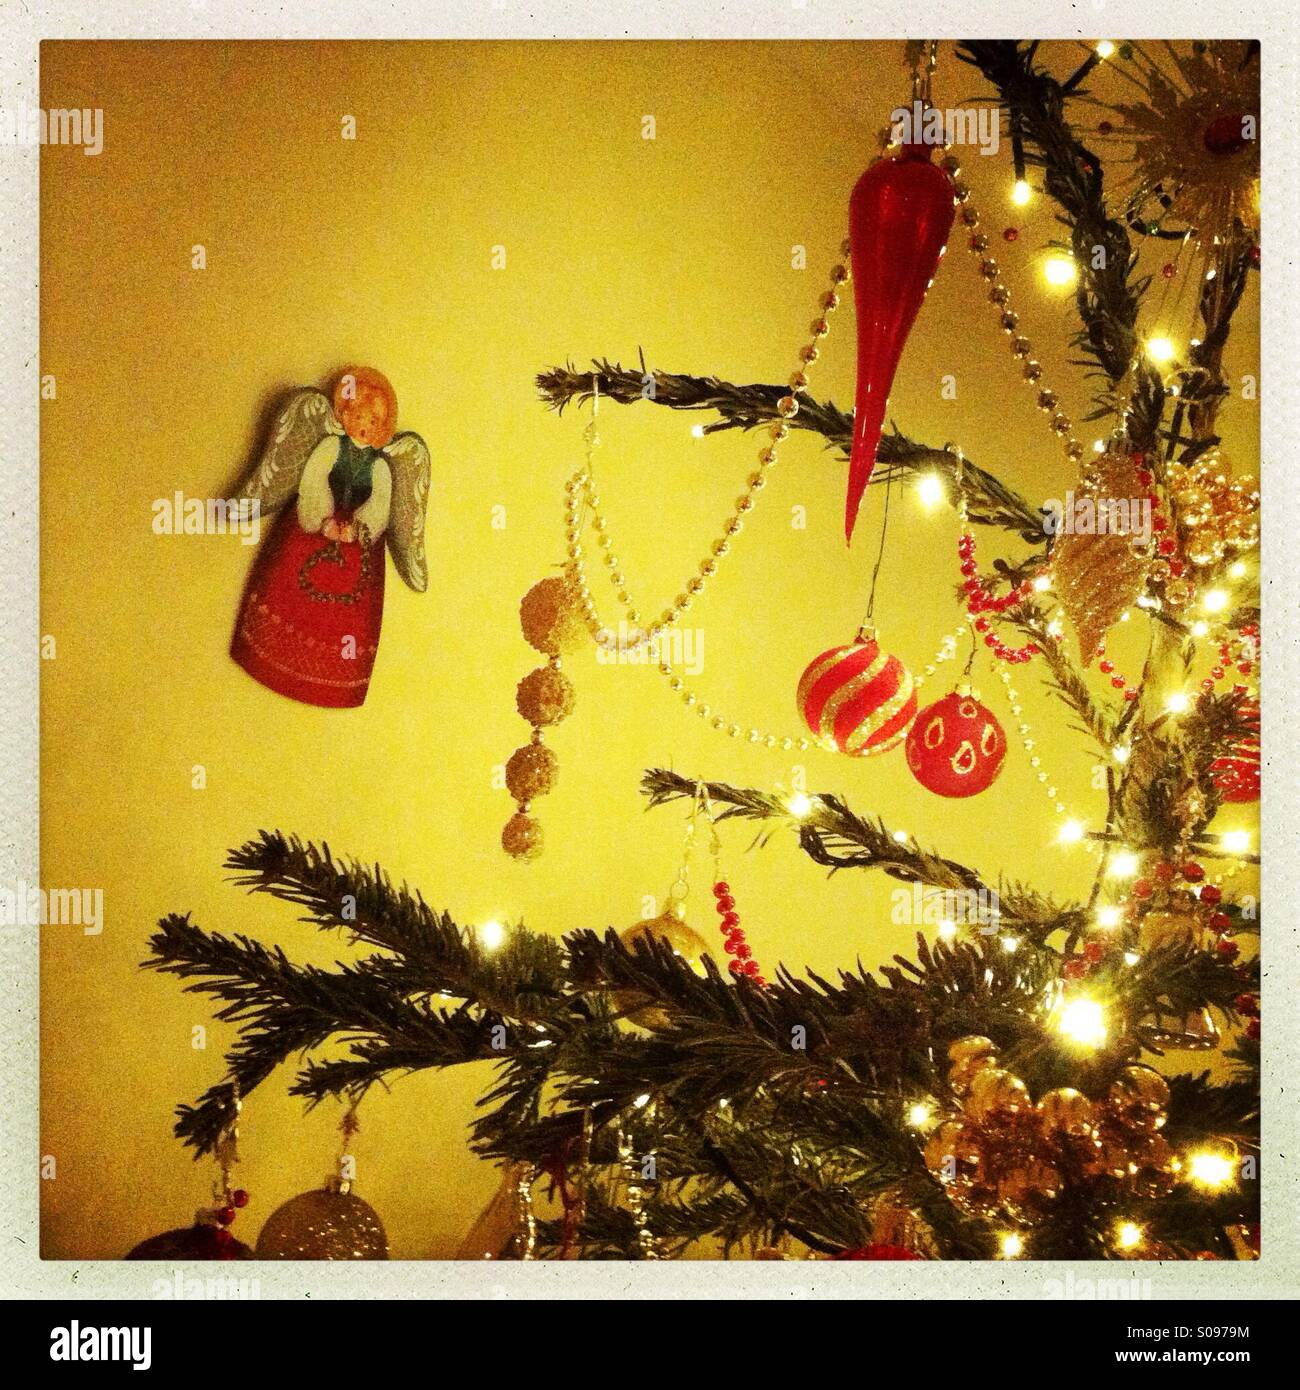 Decorated Christmas Tree Angel Stock Photos & Decorated Christmas ...